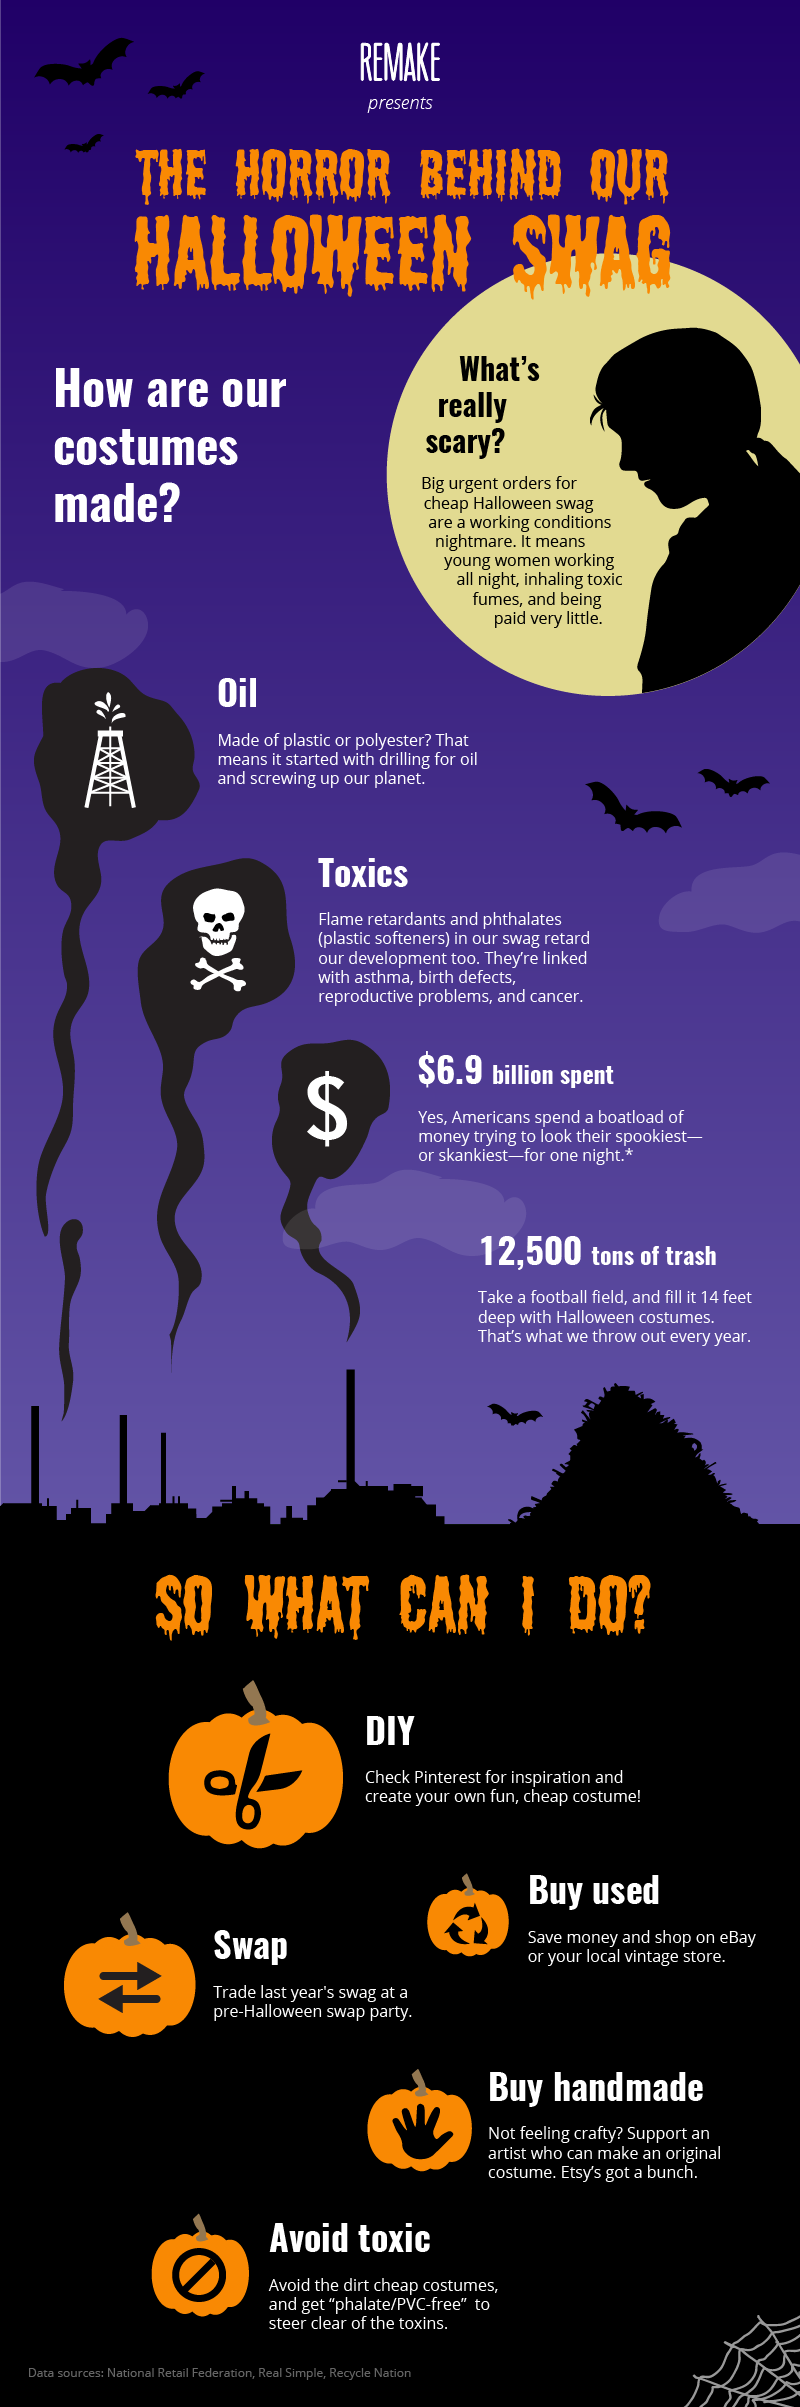 Infographic - The Horror Behind Our Halloween Swag